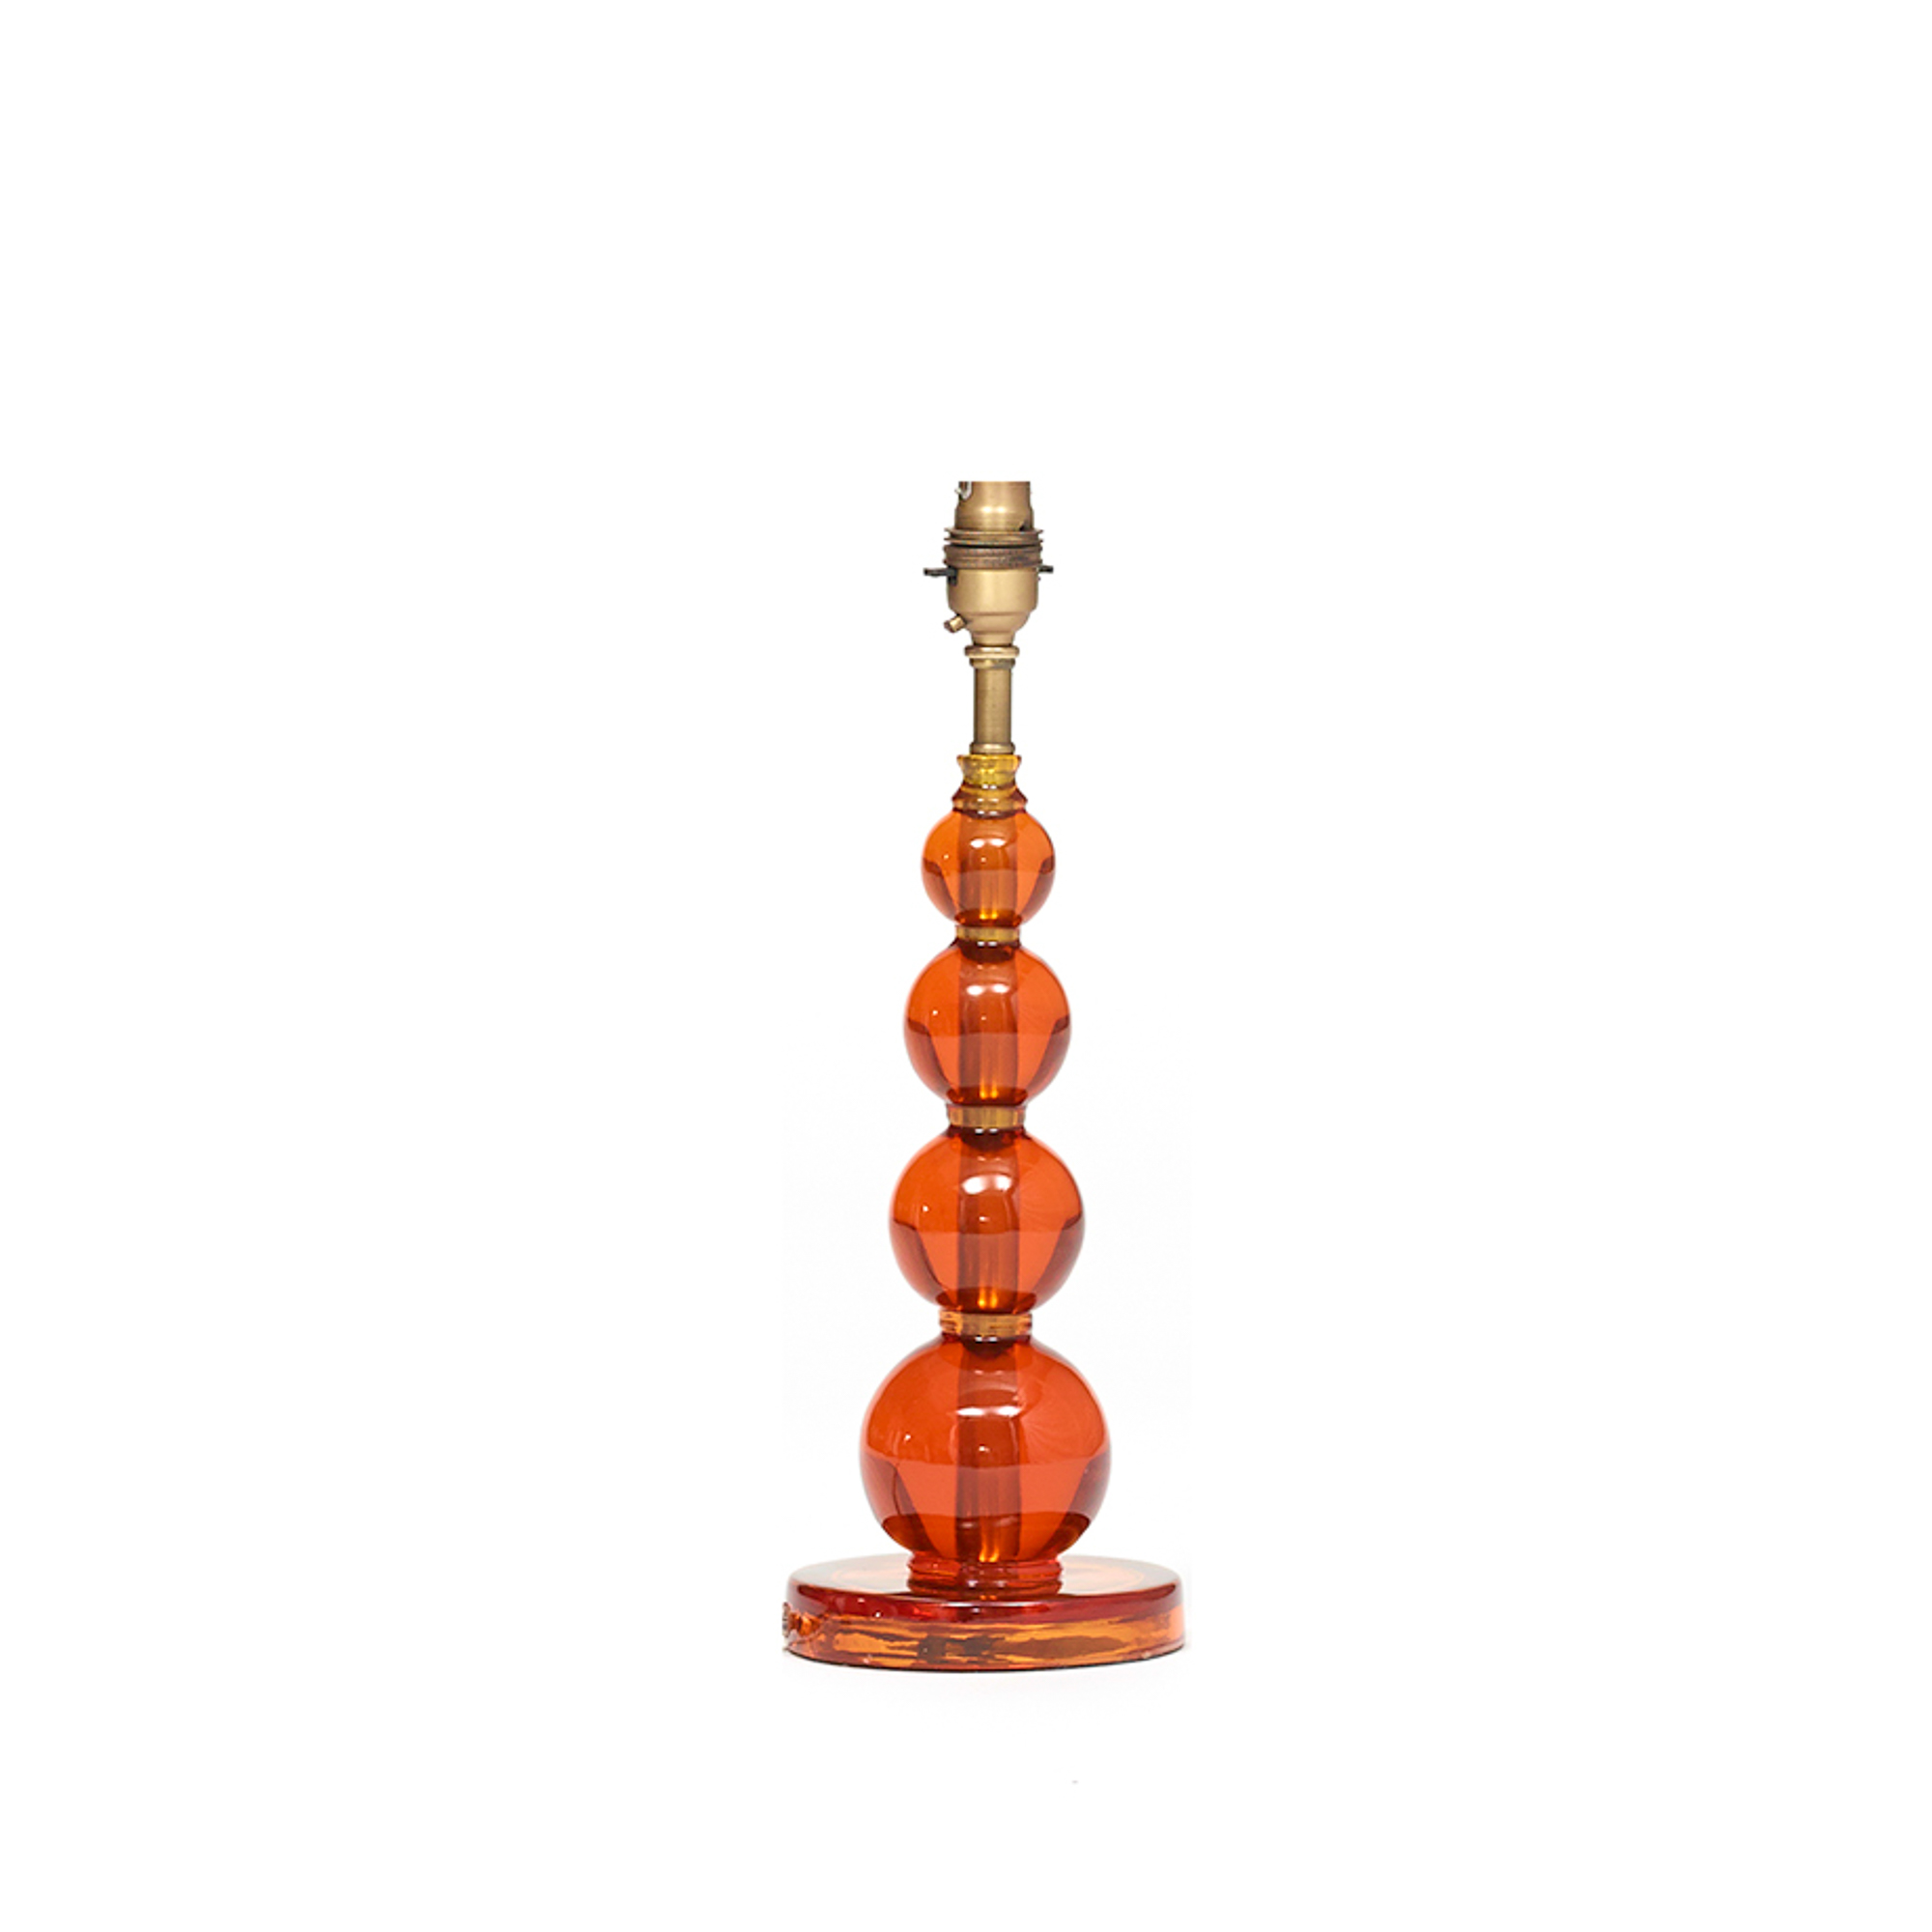 Buy pooky aurora table lamp orange pooky lighting burford pooky aurora table lamp orange geotapseo Image collections